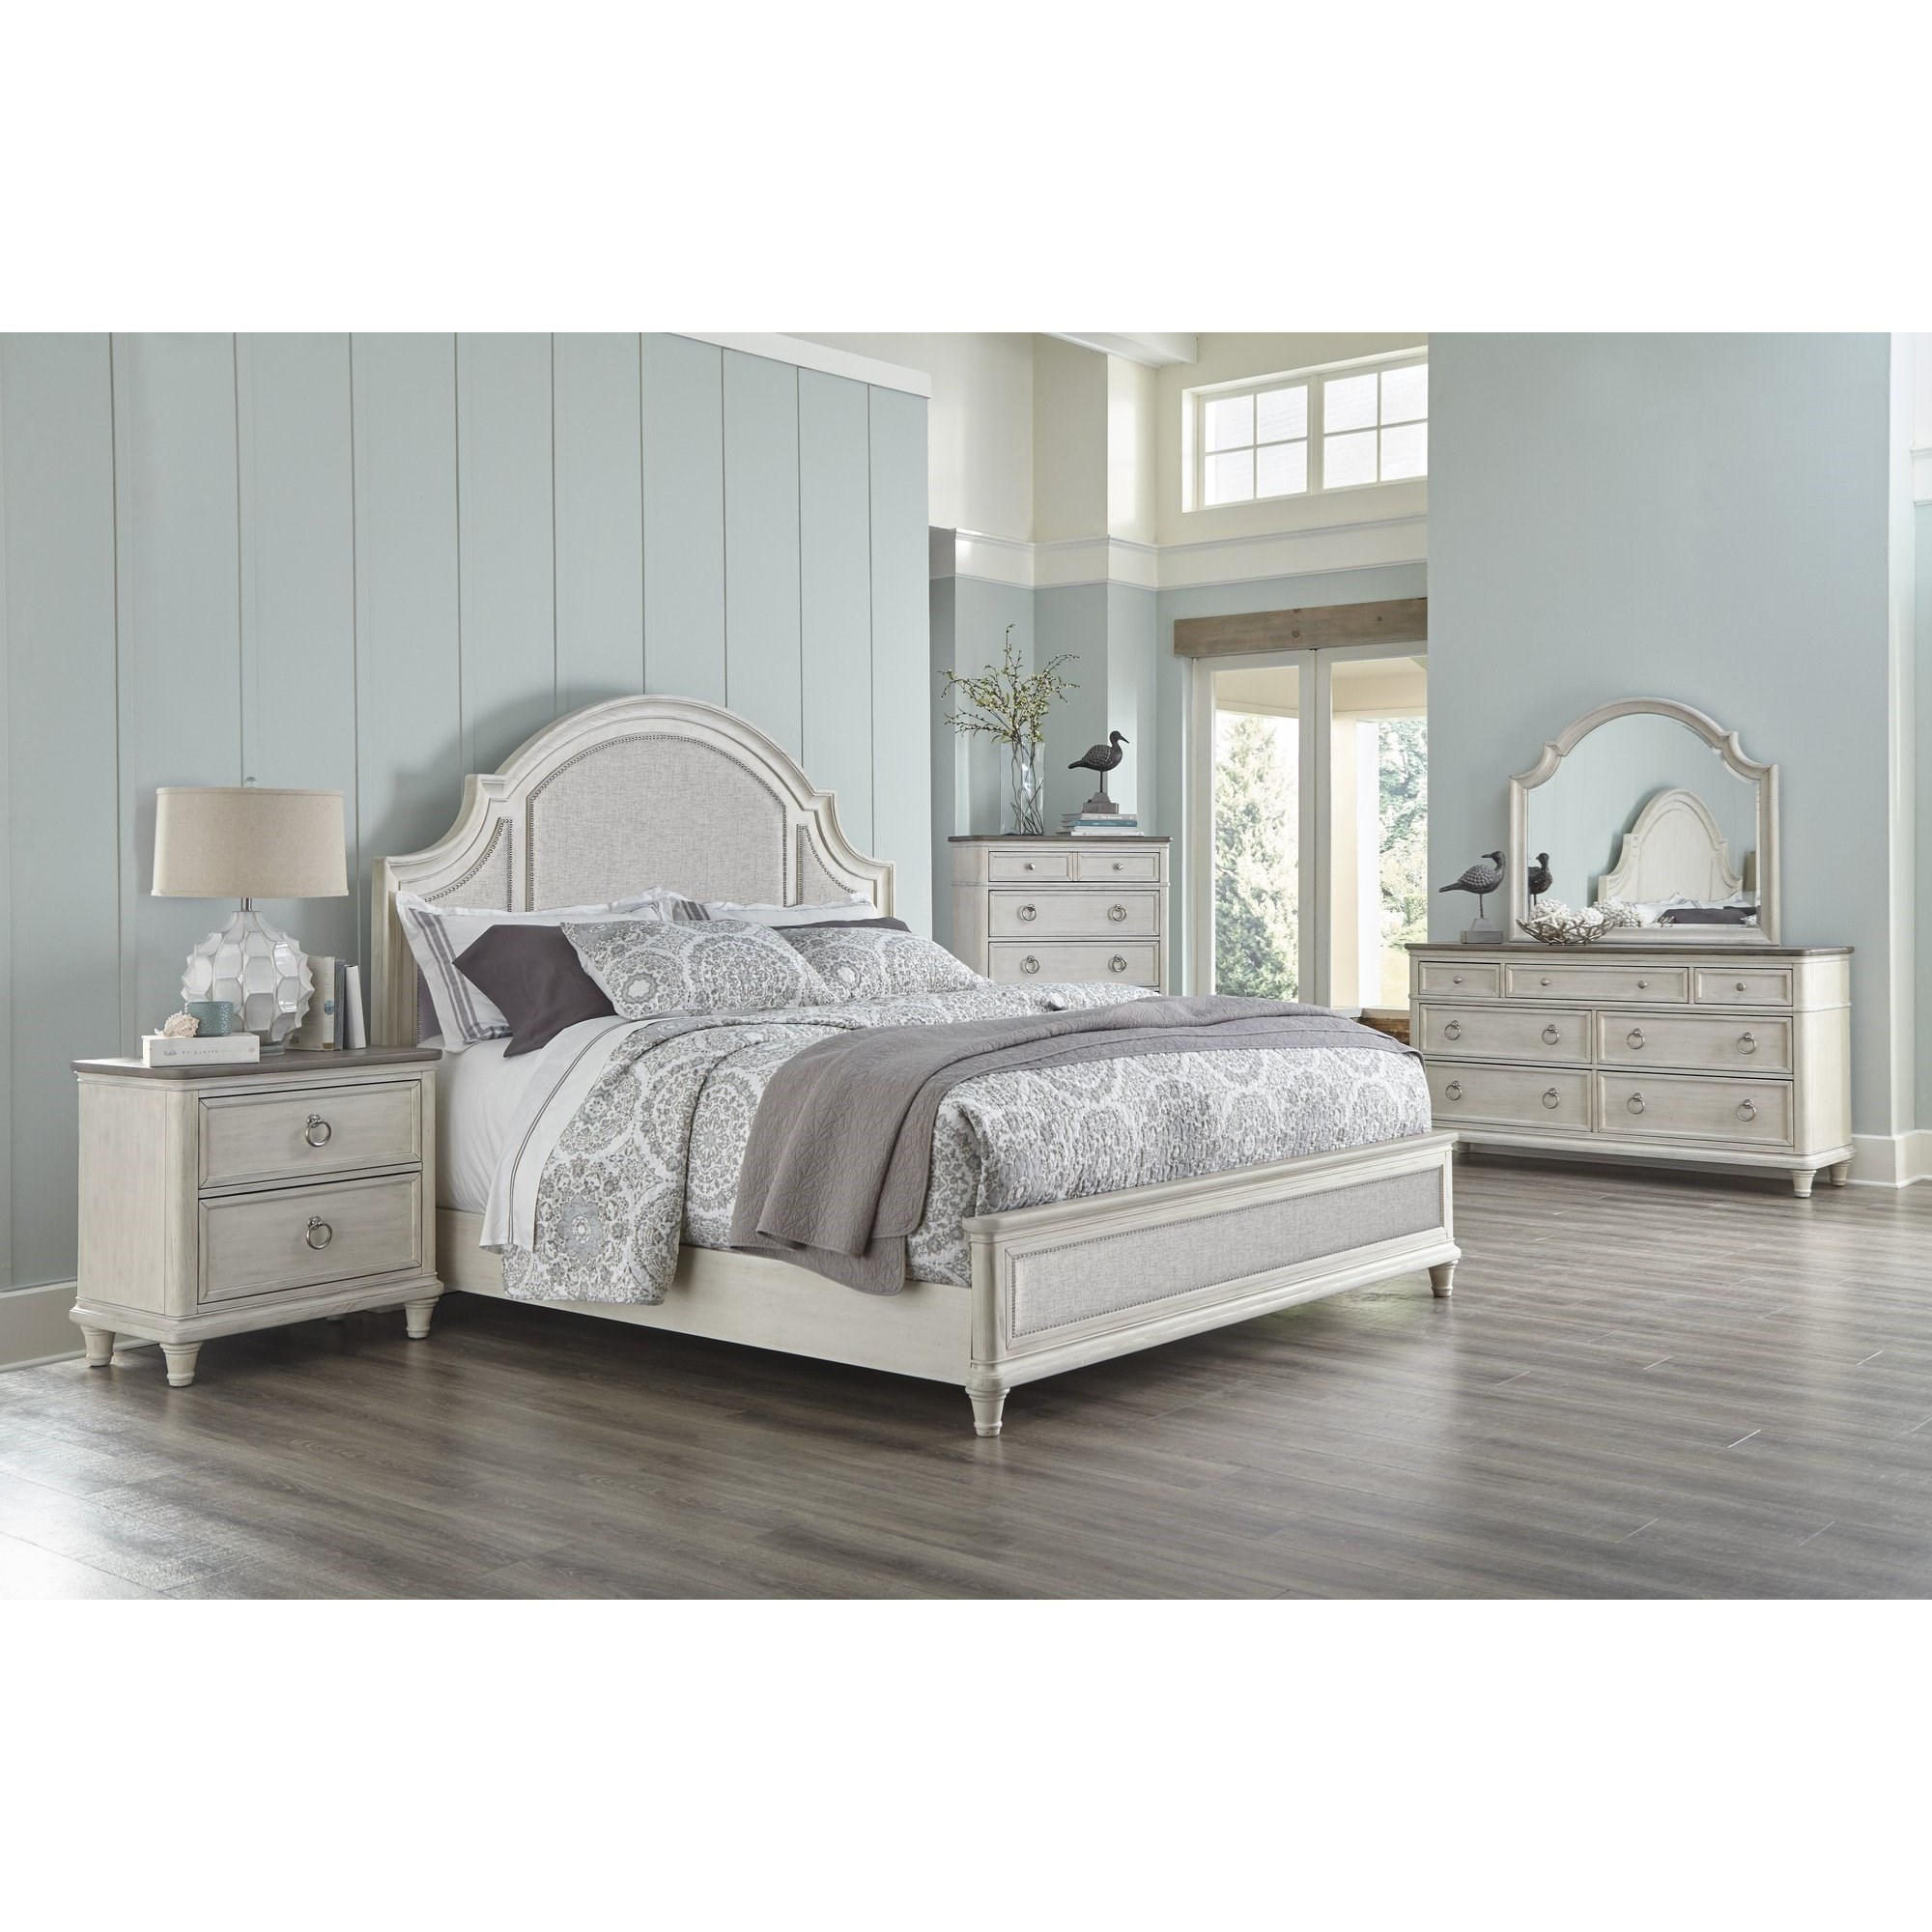 Sonoma King Bedroom Group by Panama Jack by Palmetto Home at Baer's Furniture